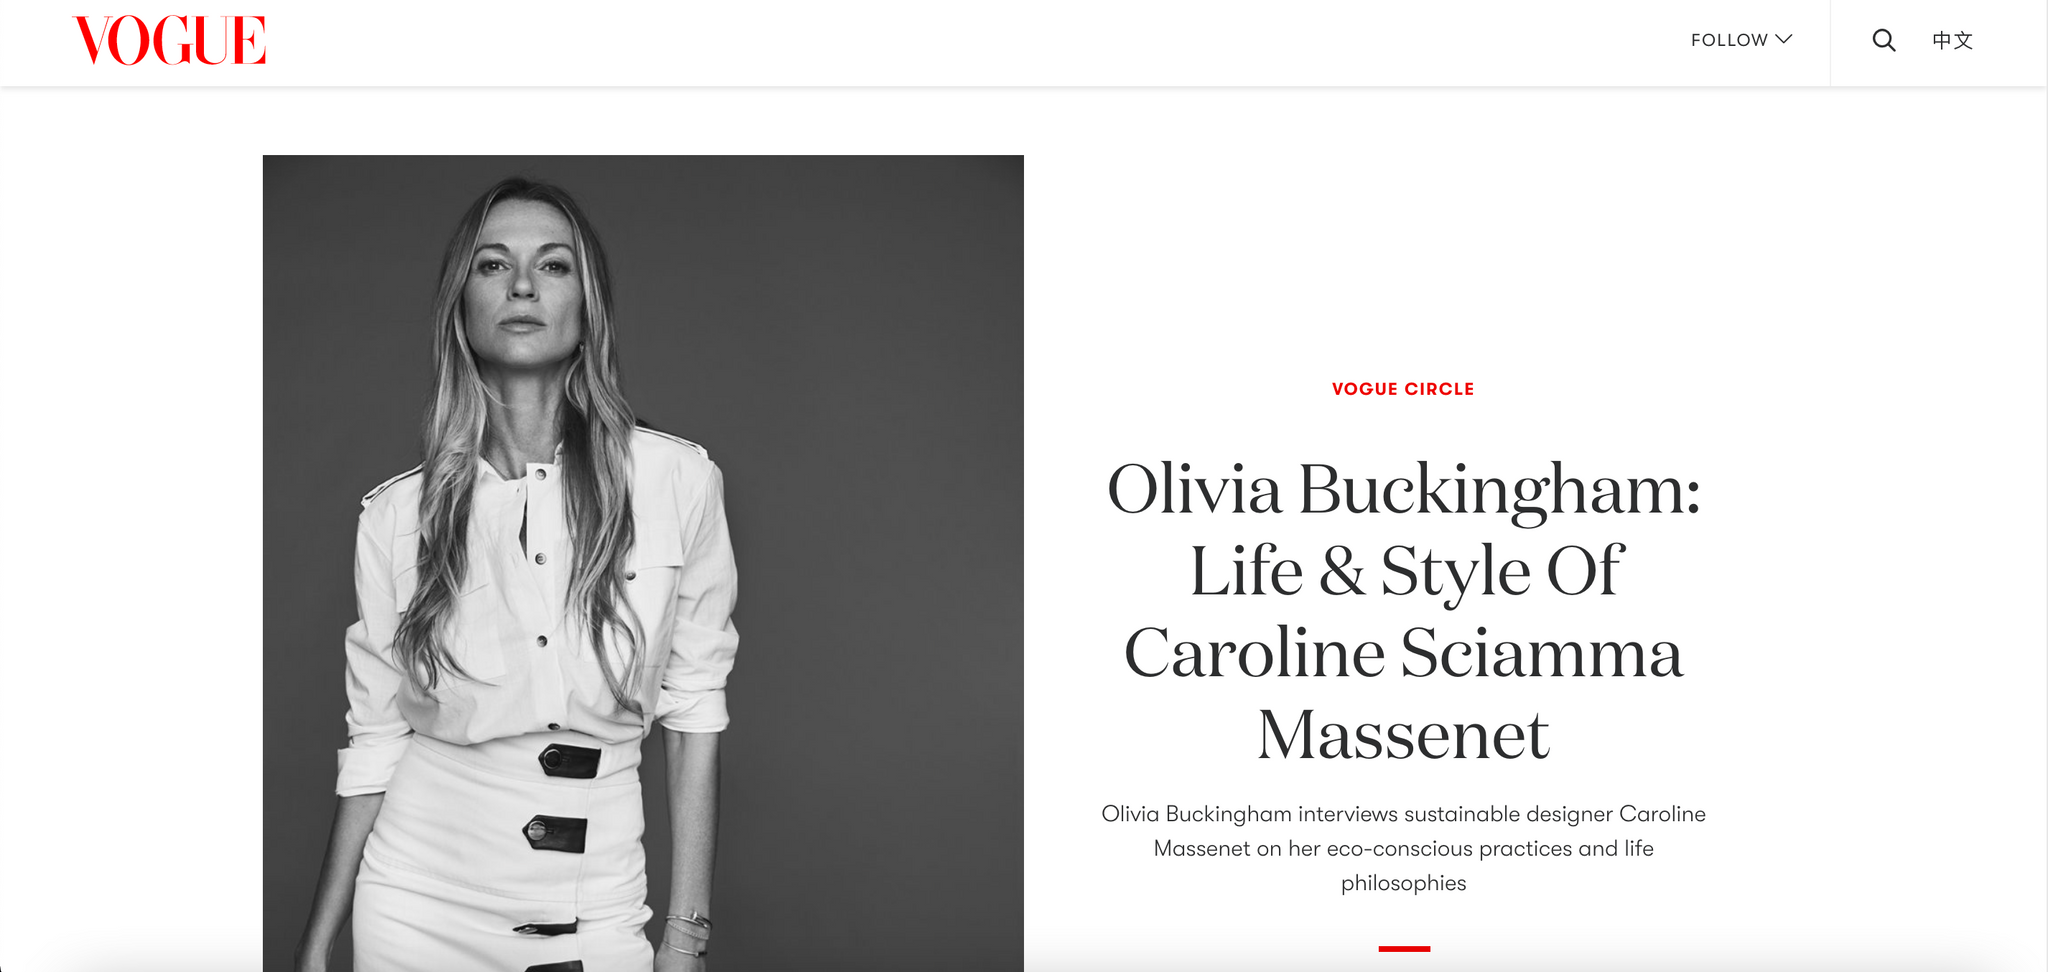 "SKIIM FOUNDER CAROLINE MASSENET ON VOGUE'S: ""Olivia Buckingham: Life & Style Of Caroline Sciamma Massenet"""